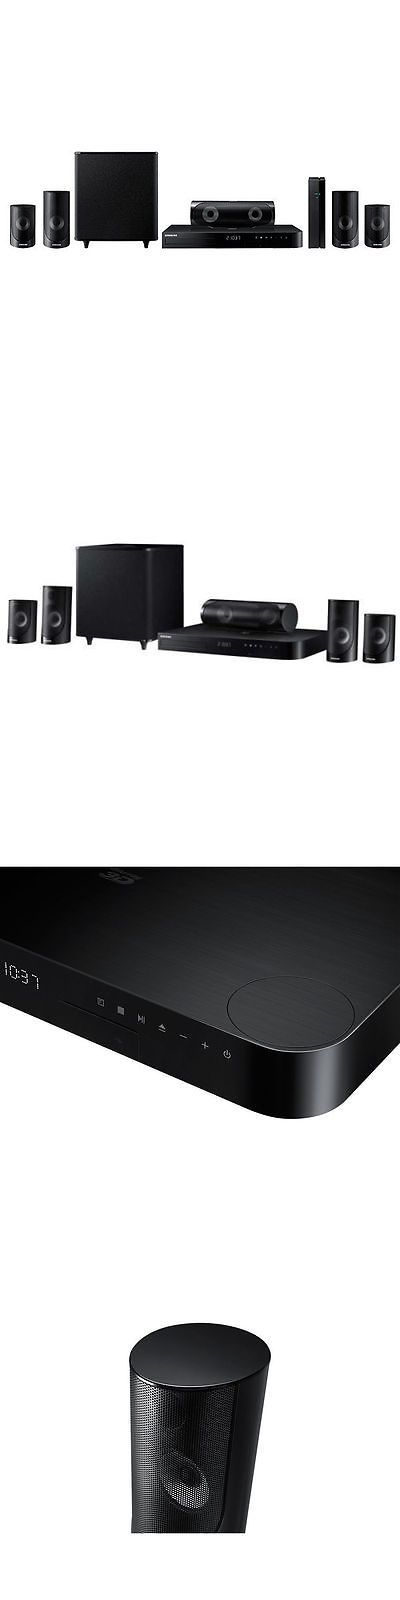 Home Theater Systems: Samsung Ht-J5500w 5.1 Channel 1000-Watt 3D Blu-Ray Home Theater System BUY IT NOW ONLY: $324.36